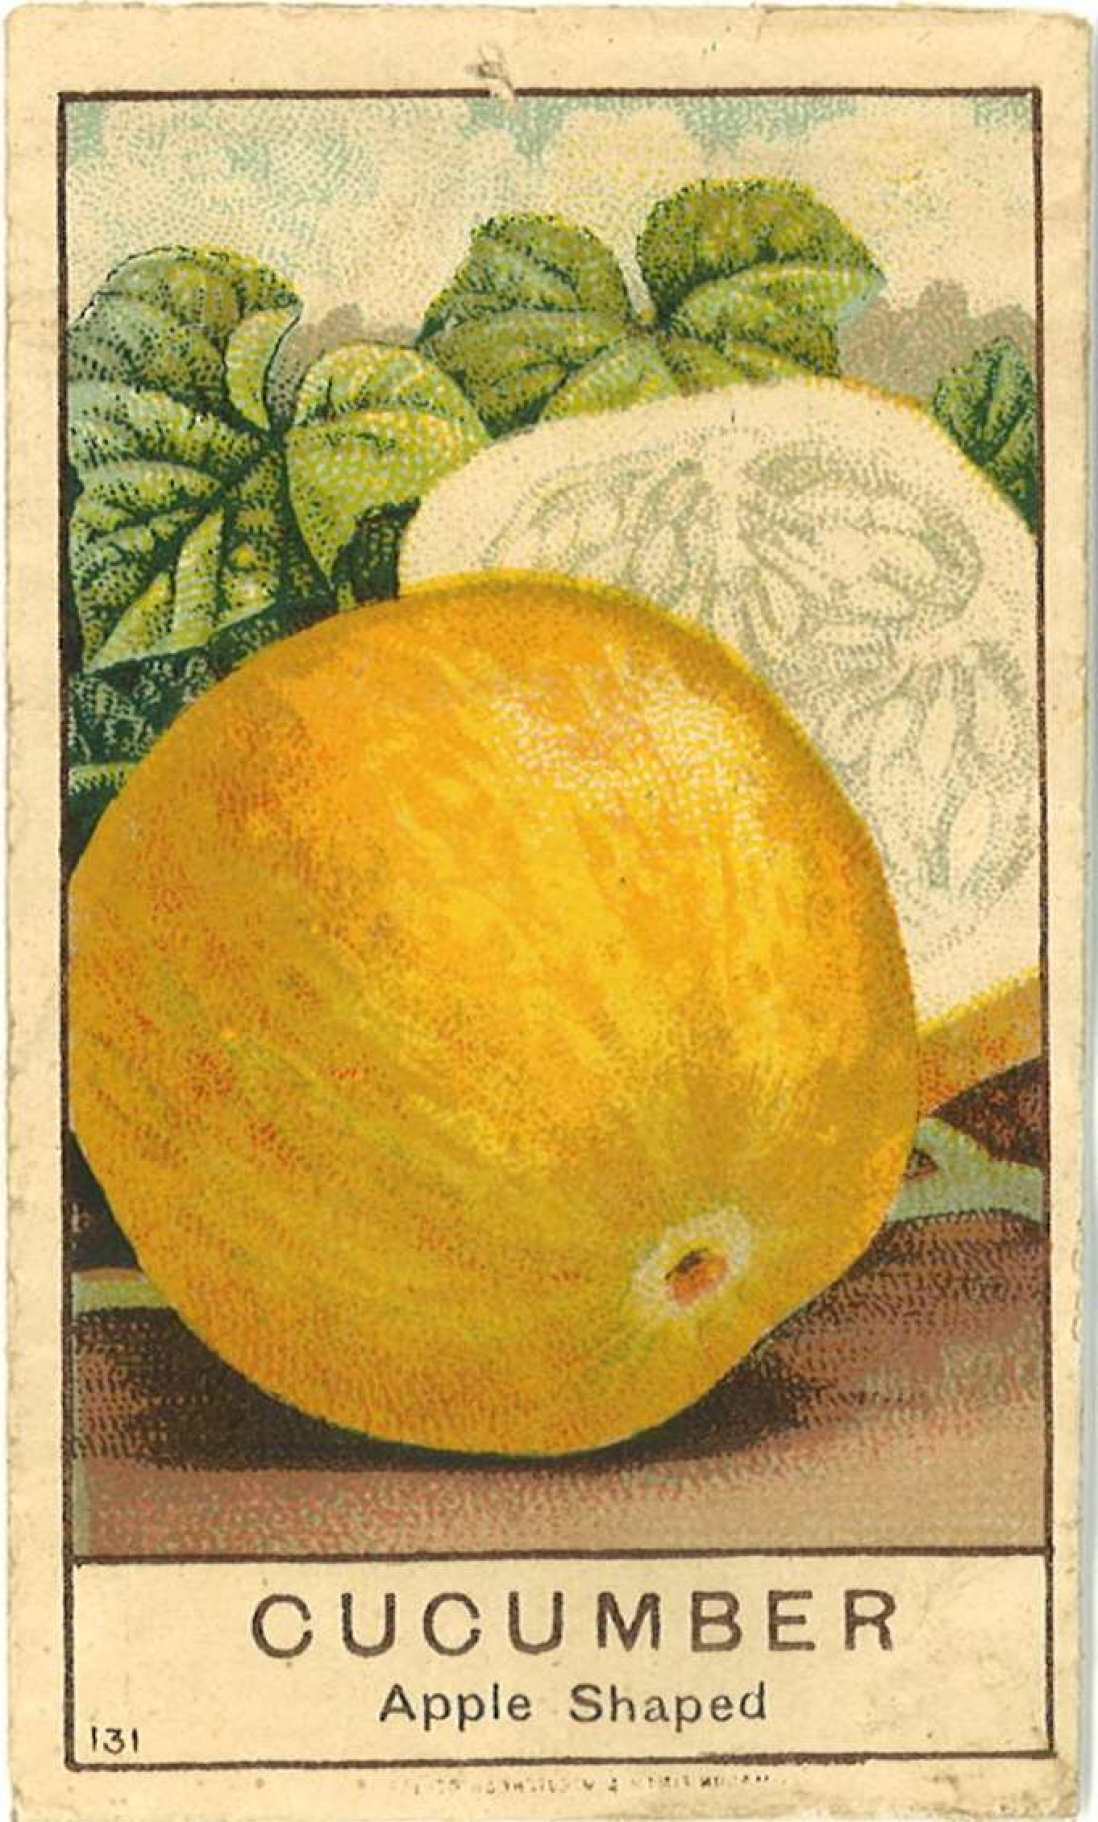 Seed packet cover with image of yellow apple cucumber.